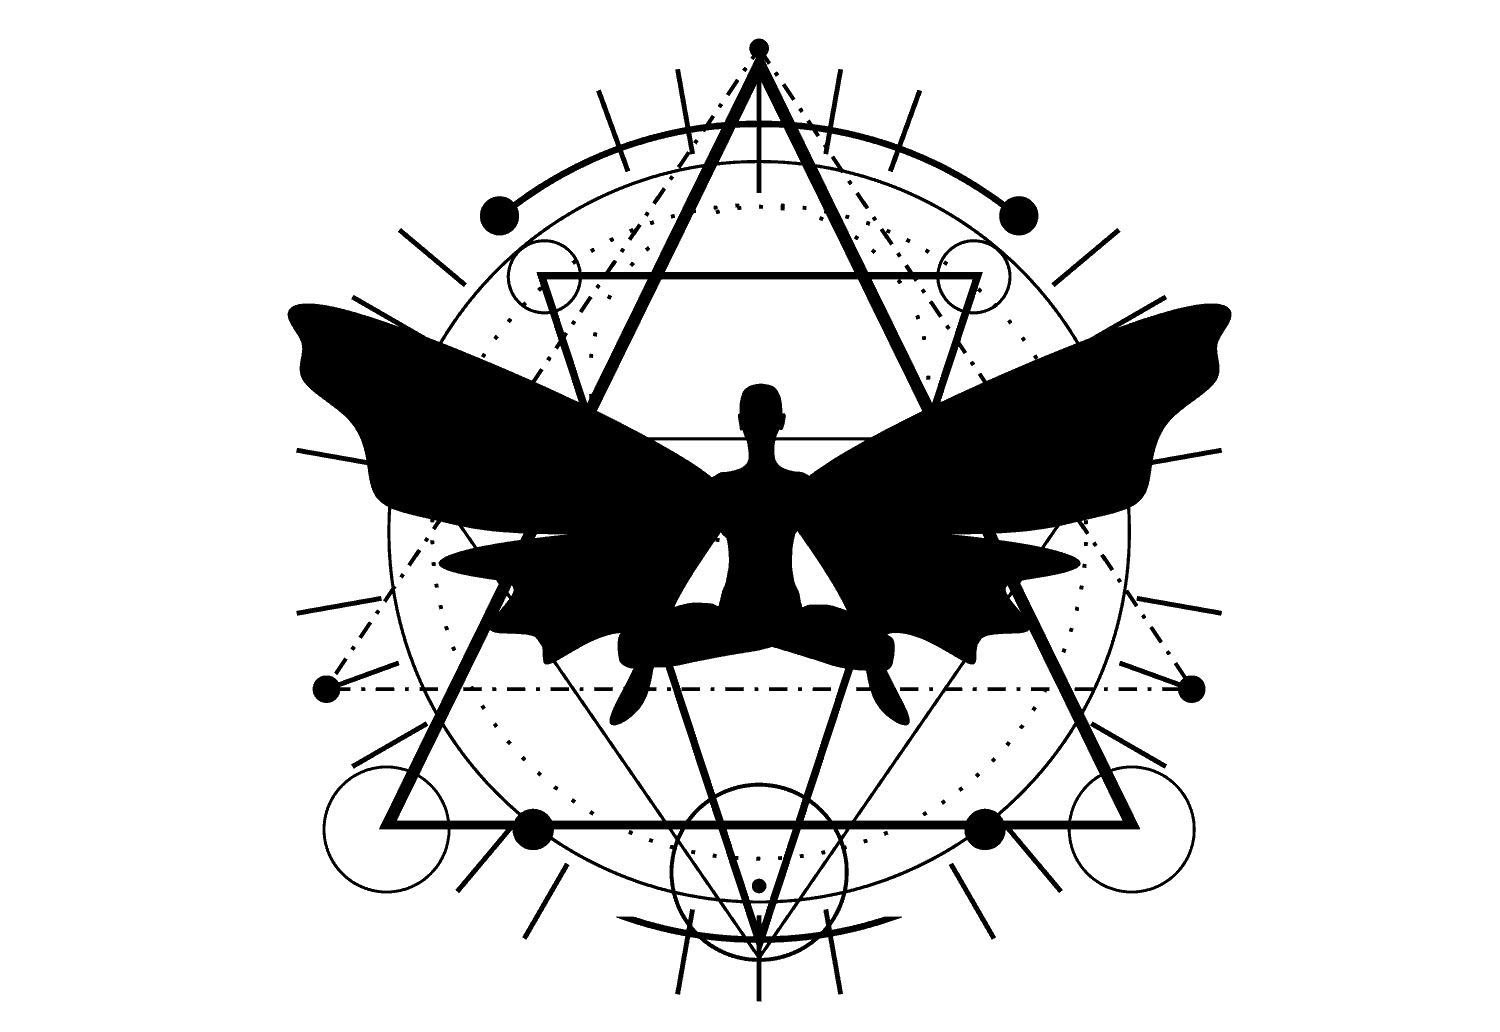 bigstock-Mystery-Witchcraft-Occult-An-253374280.png